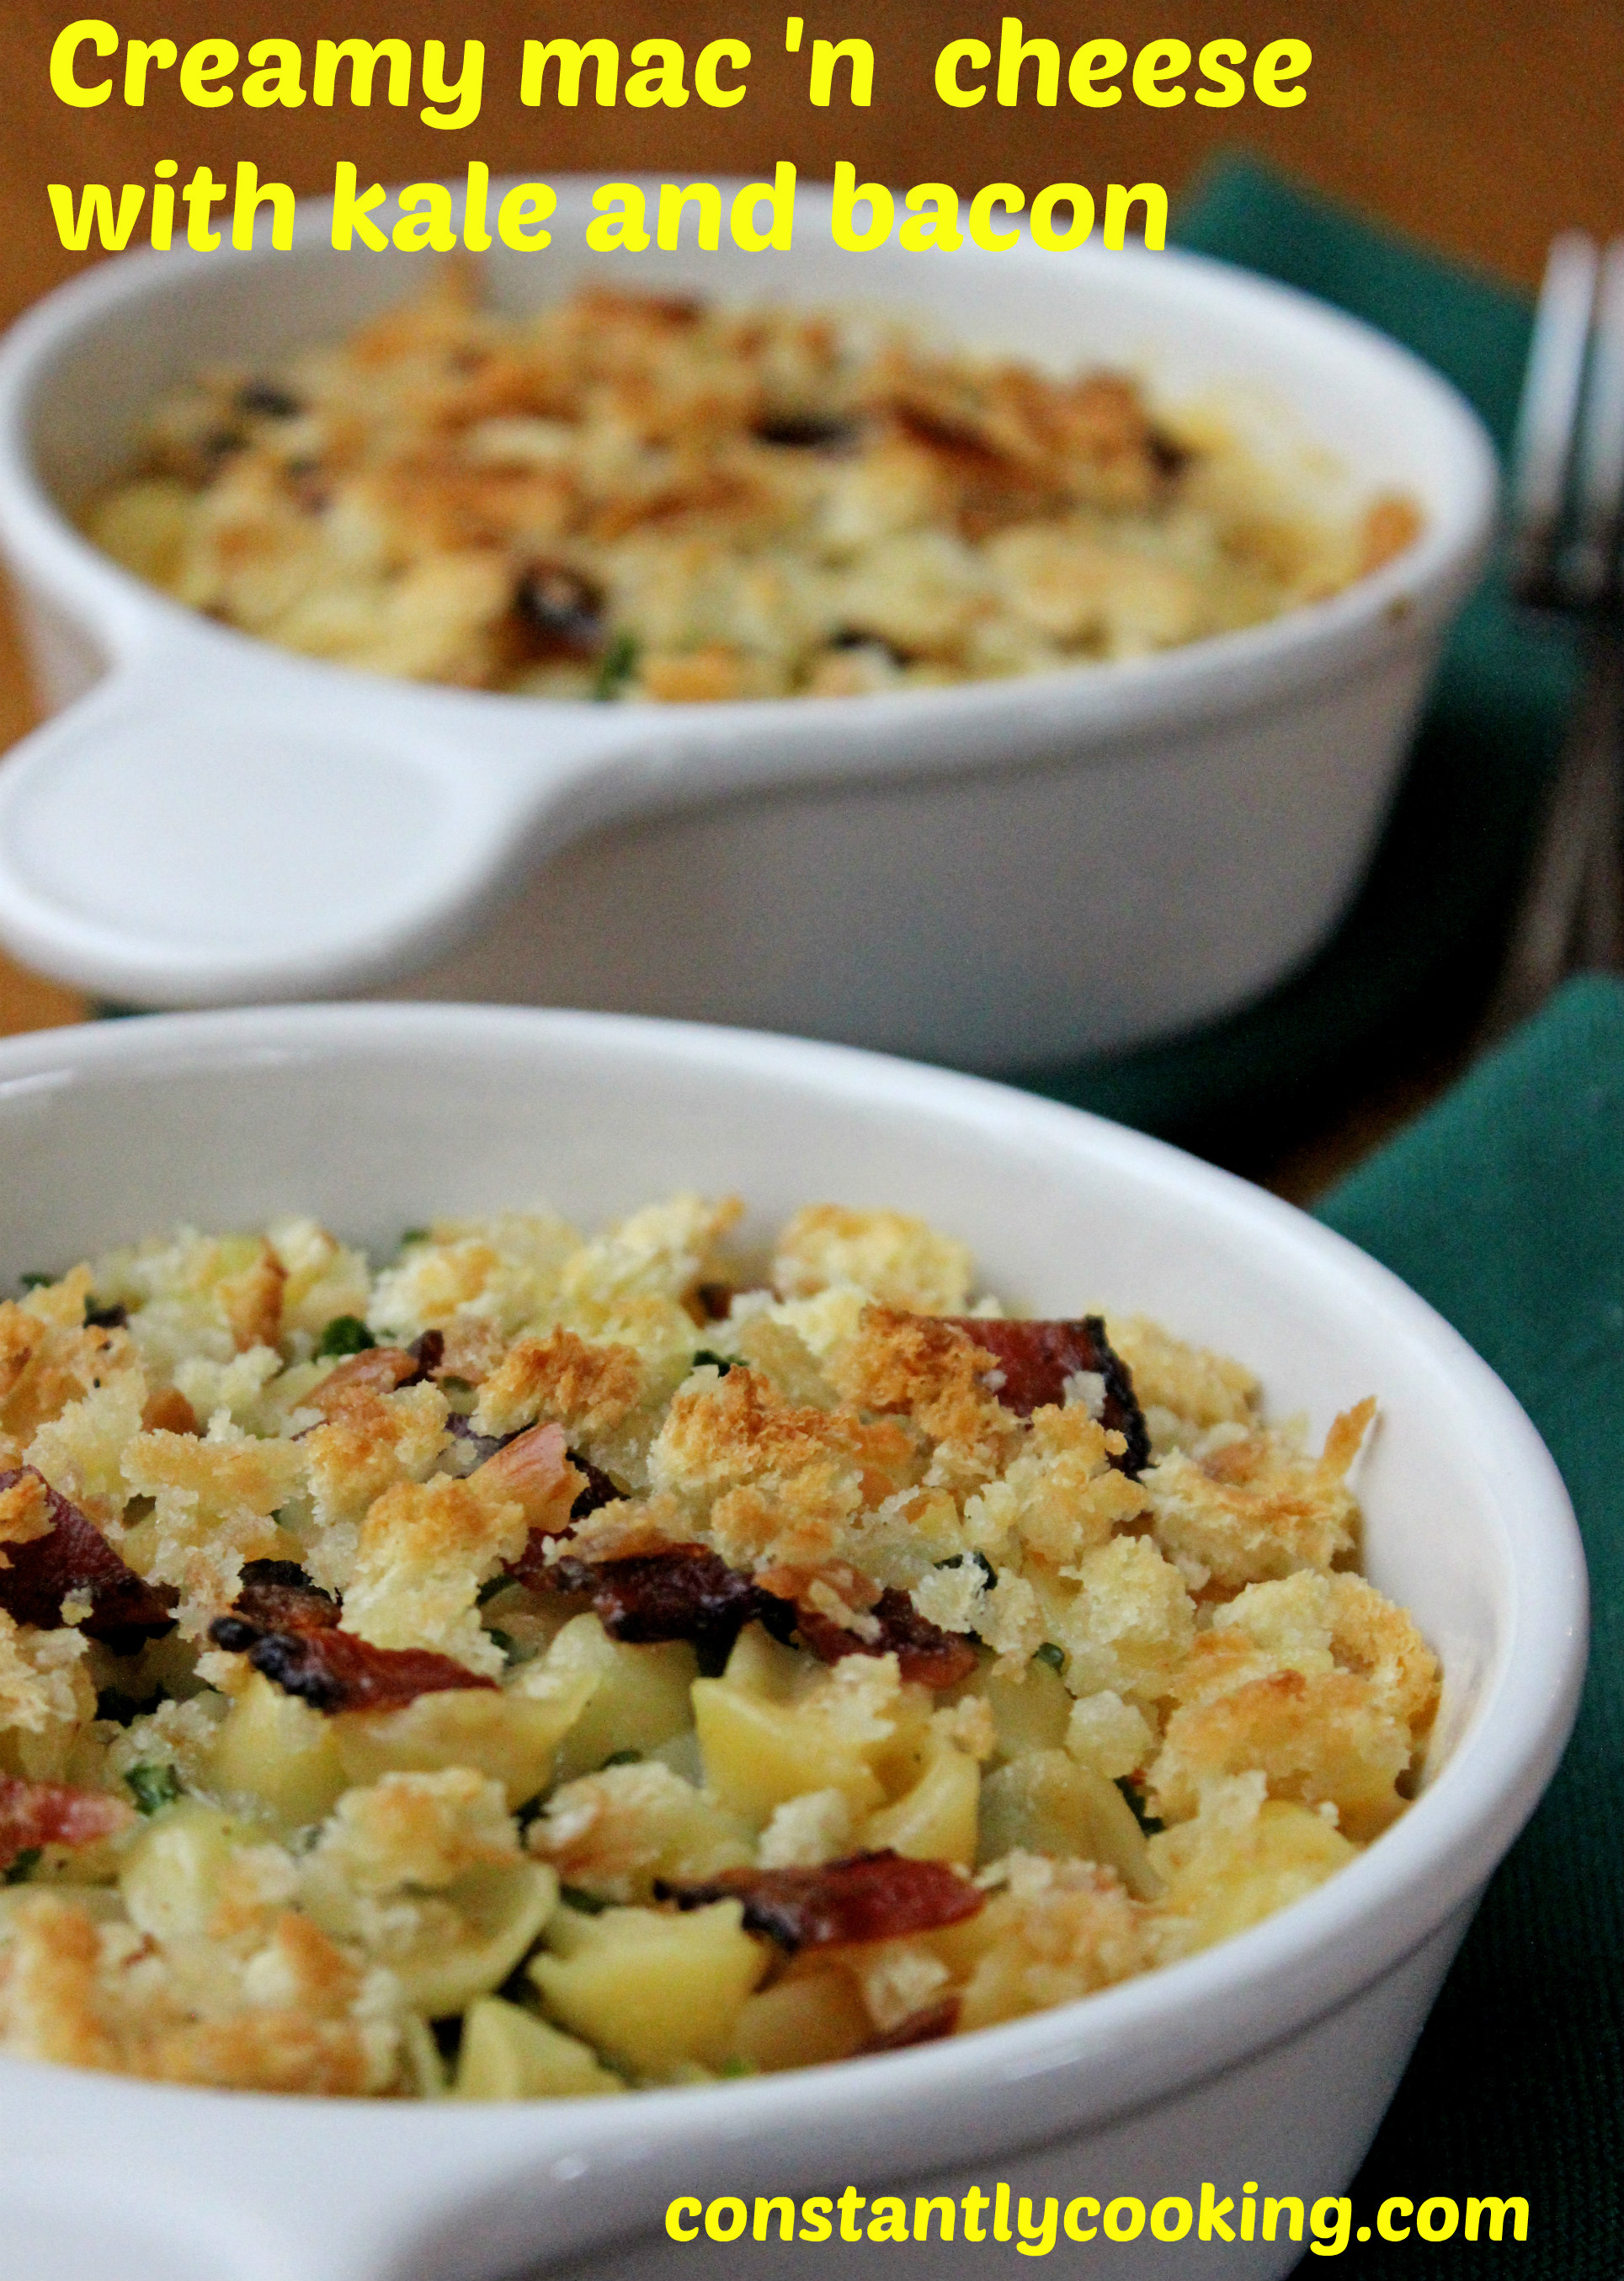 Creamy macaroni and cheese with kale and bacon ...